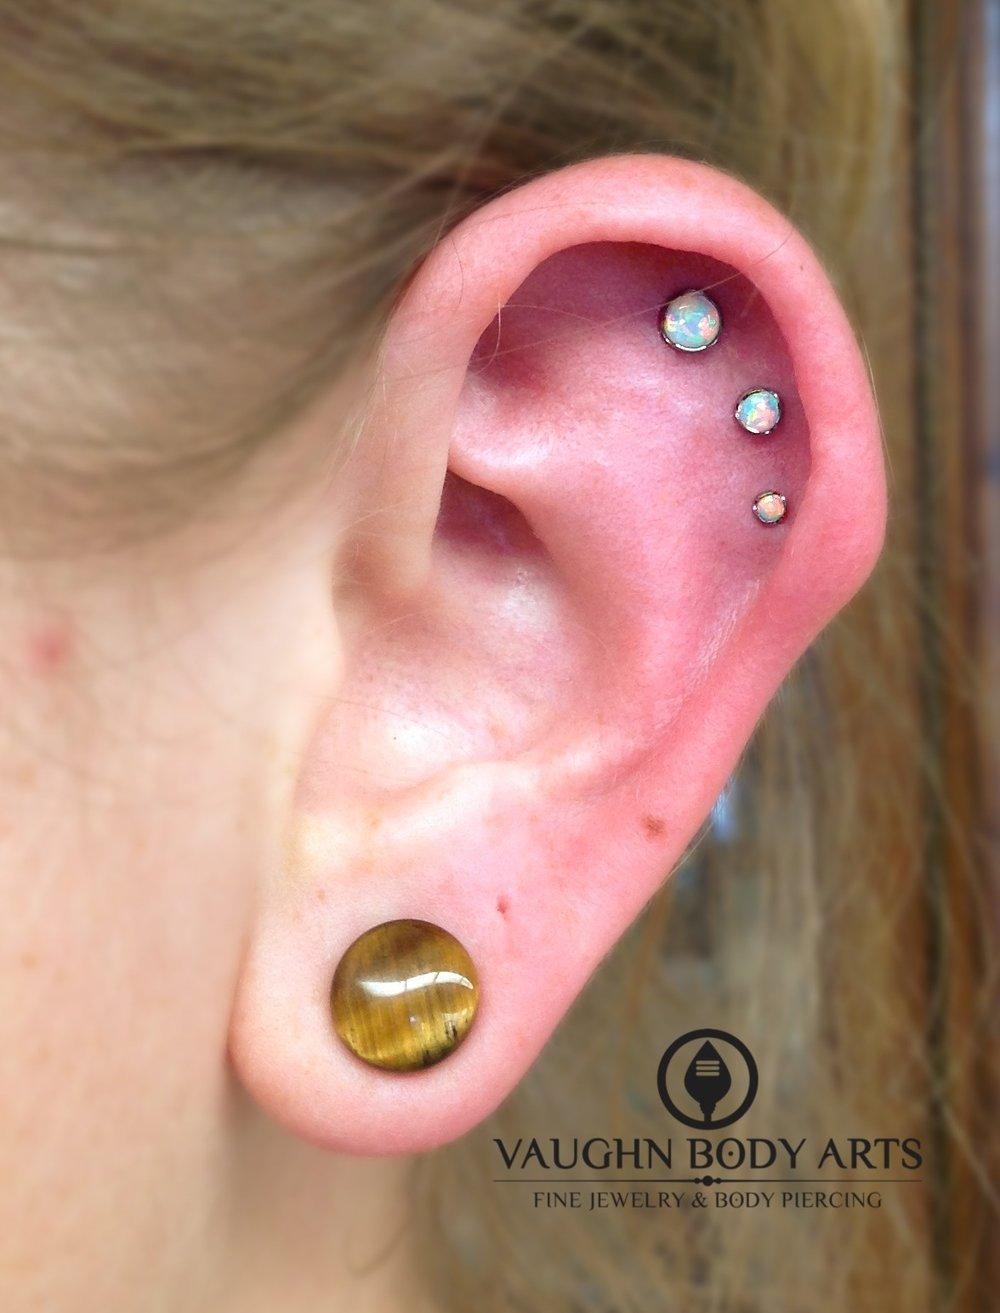 Triple helix piercings with titanium jewelry from Anatometal.